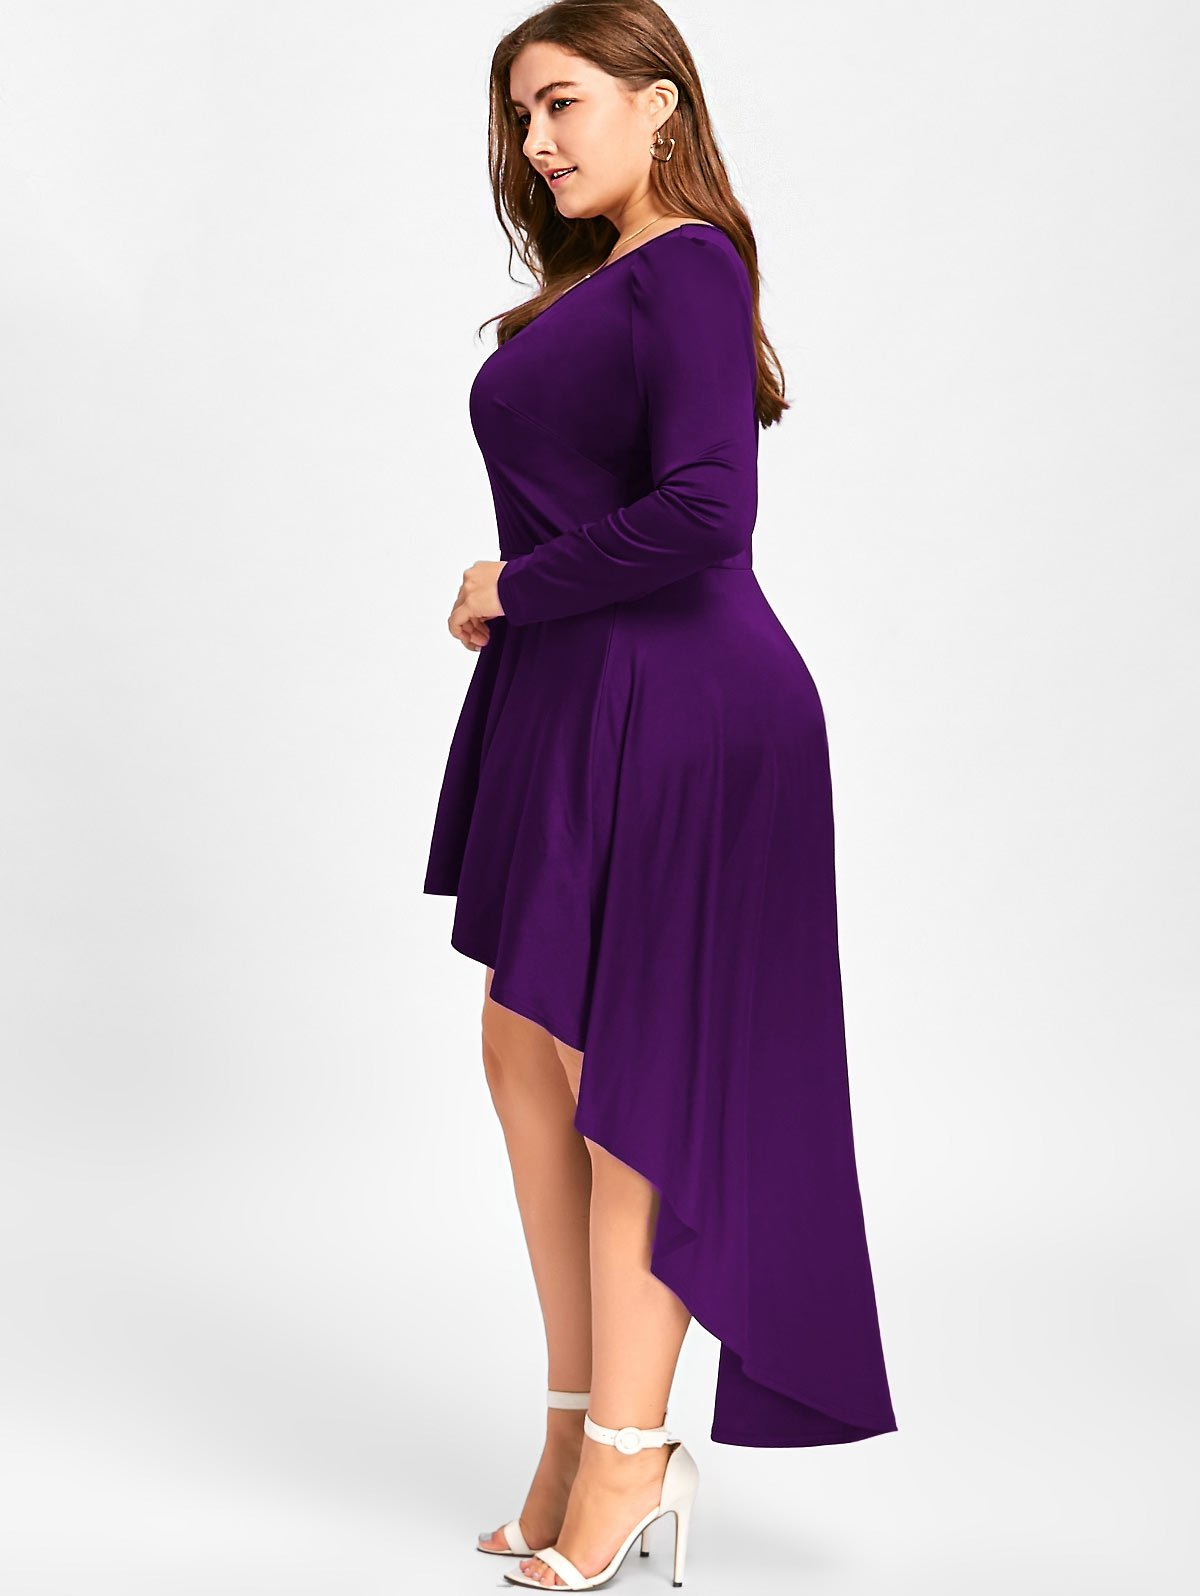 Plus Size V Neck Cocktail Dress-Dress-SheSimplyShops